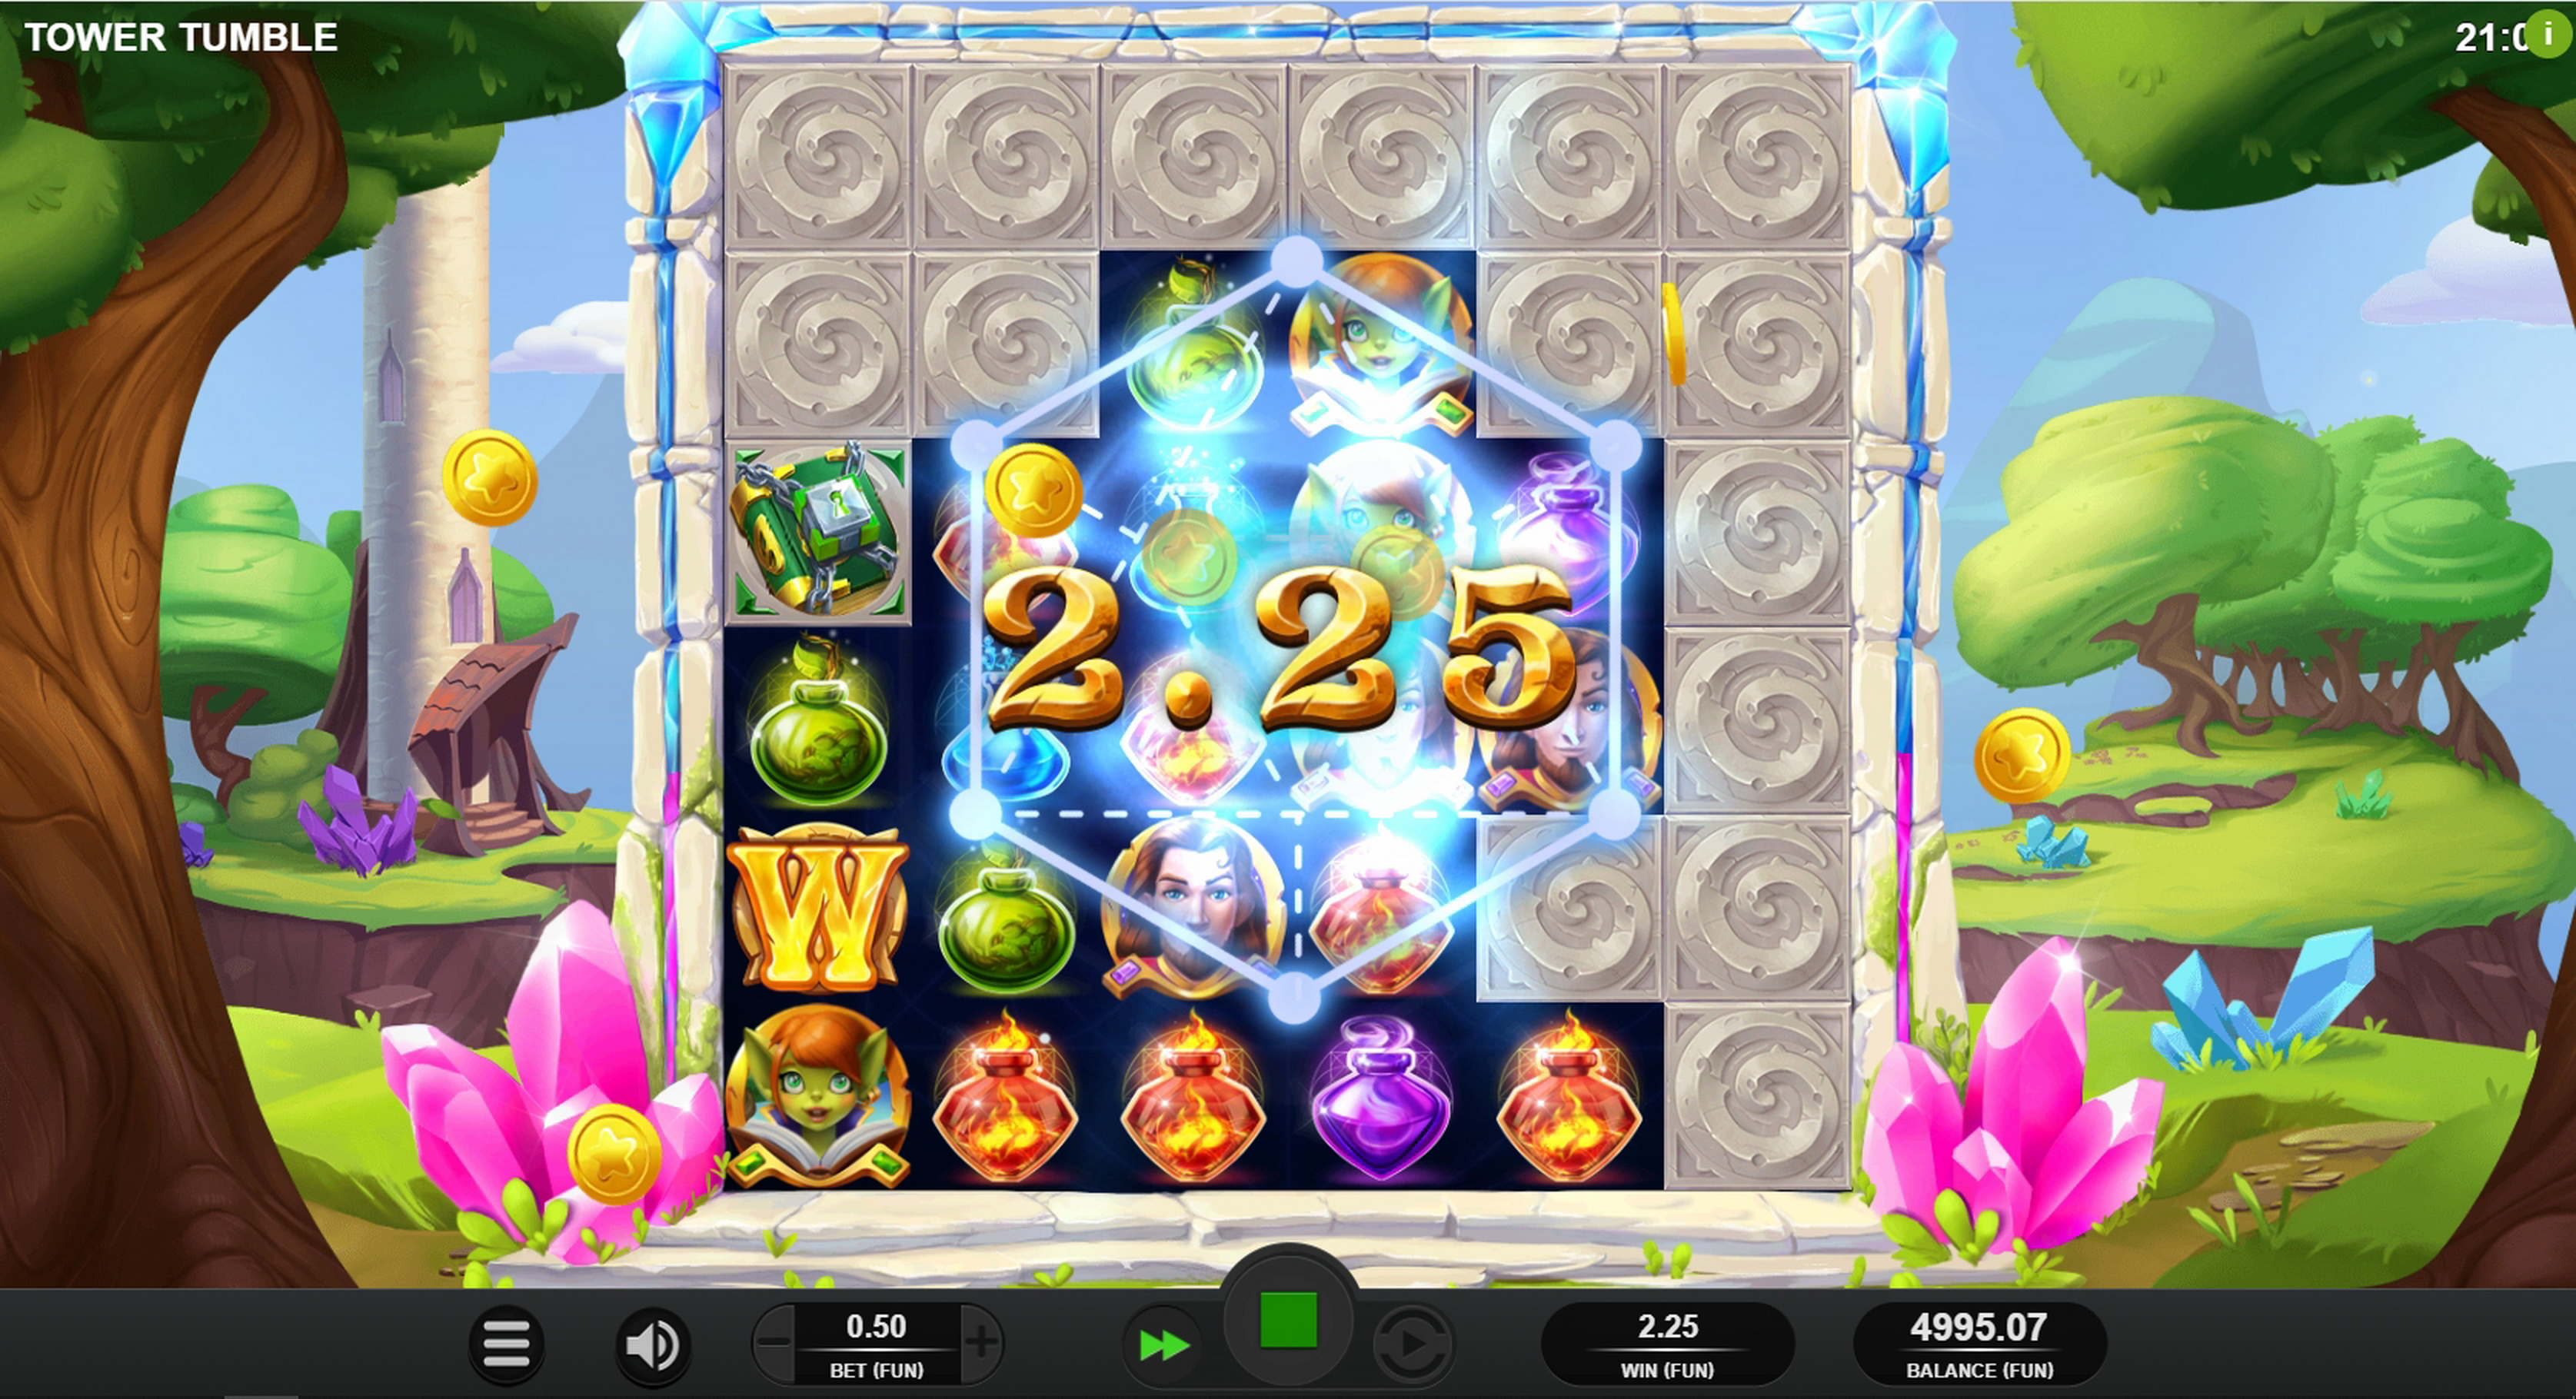 Win Money in Tower Tumble Free Slot Game by Relax Gaming